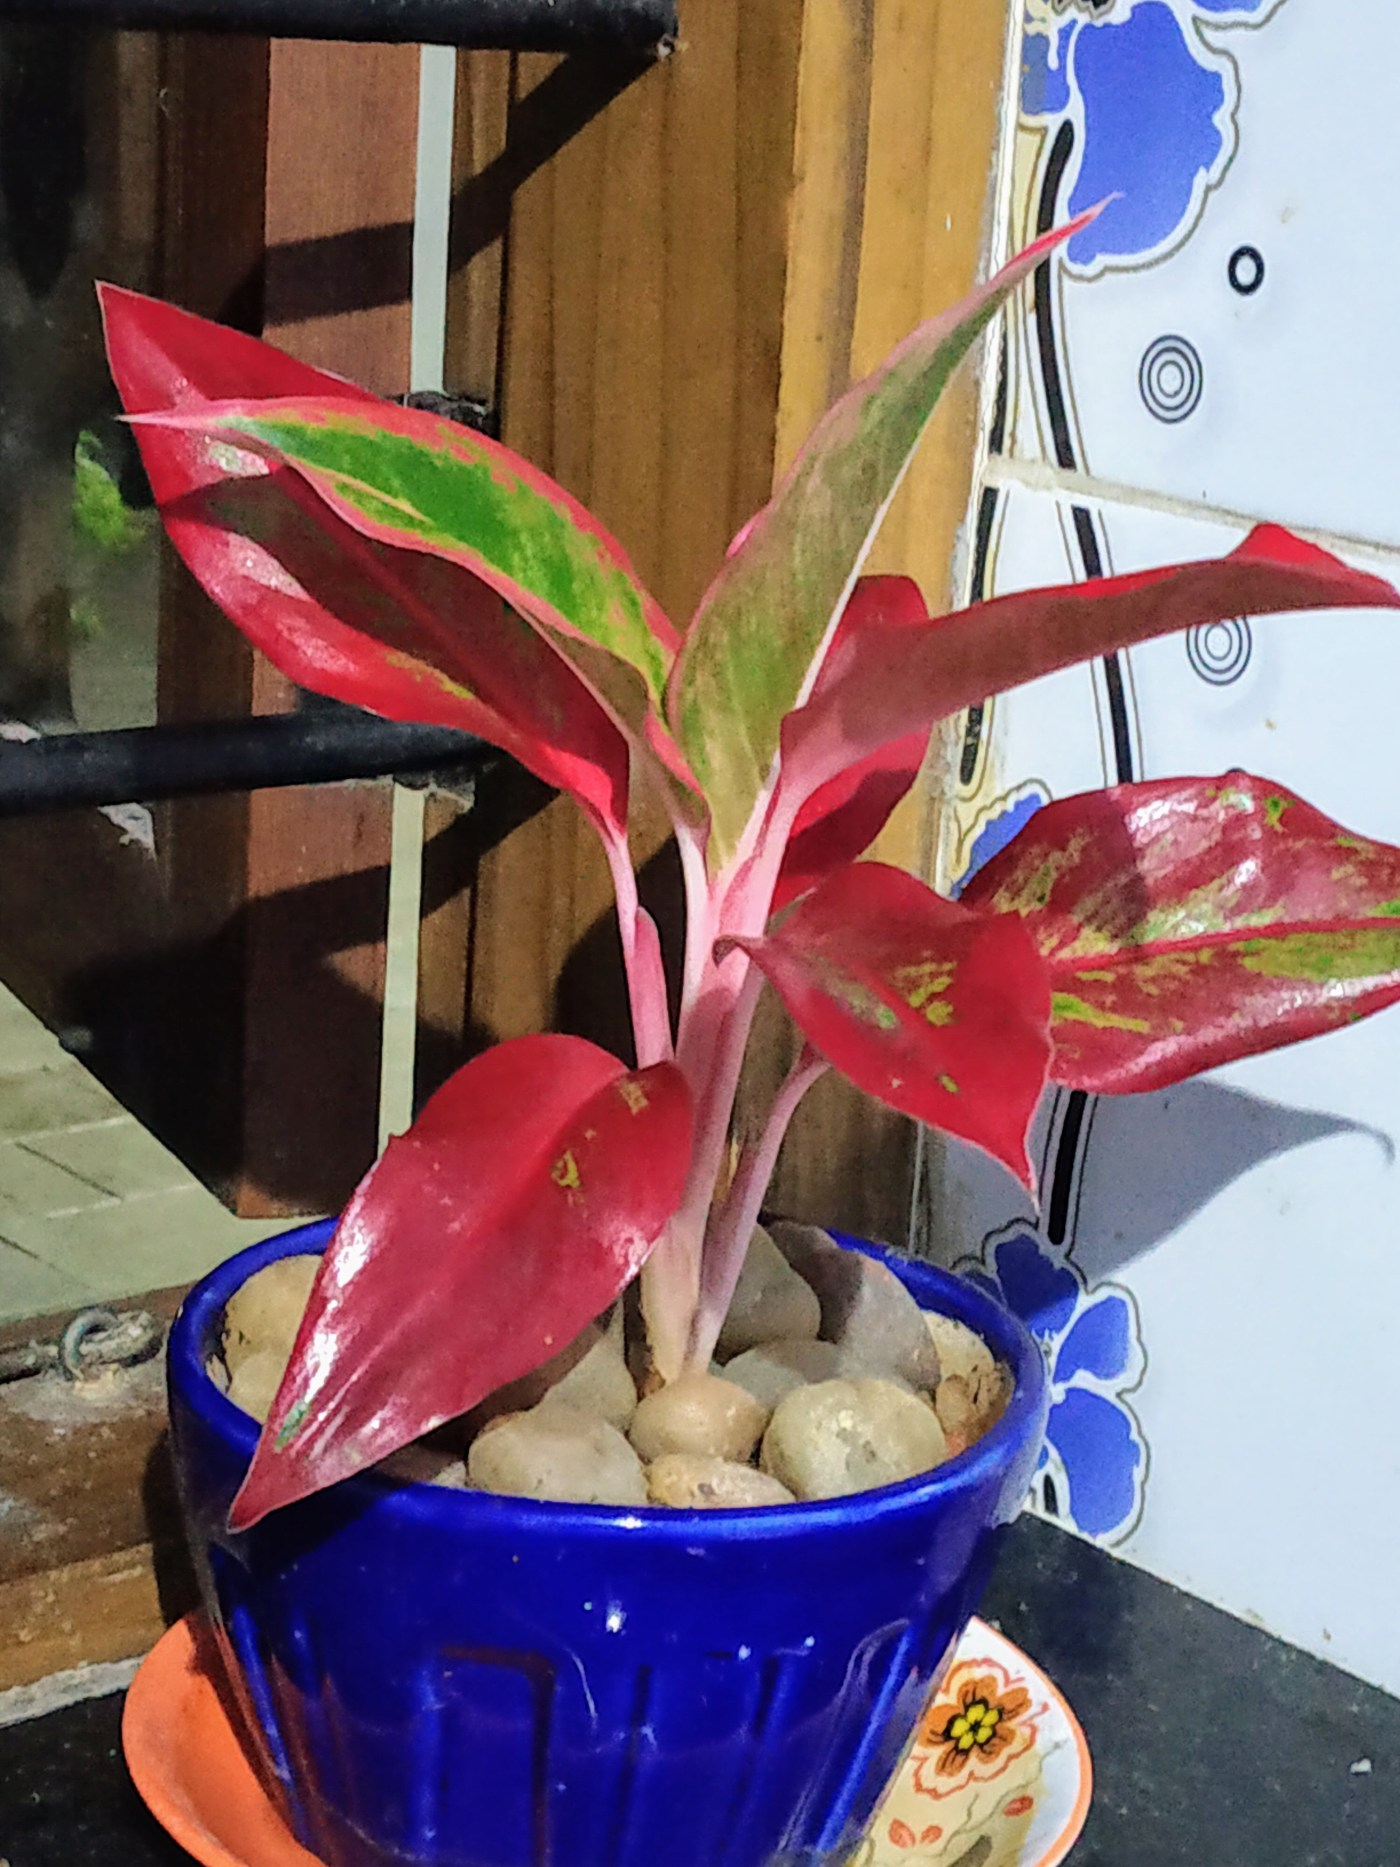 You can plant baby plants of Aglaonema in ceramic pots.